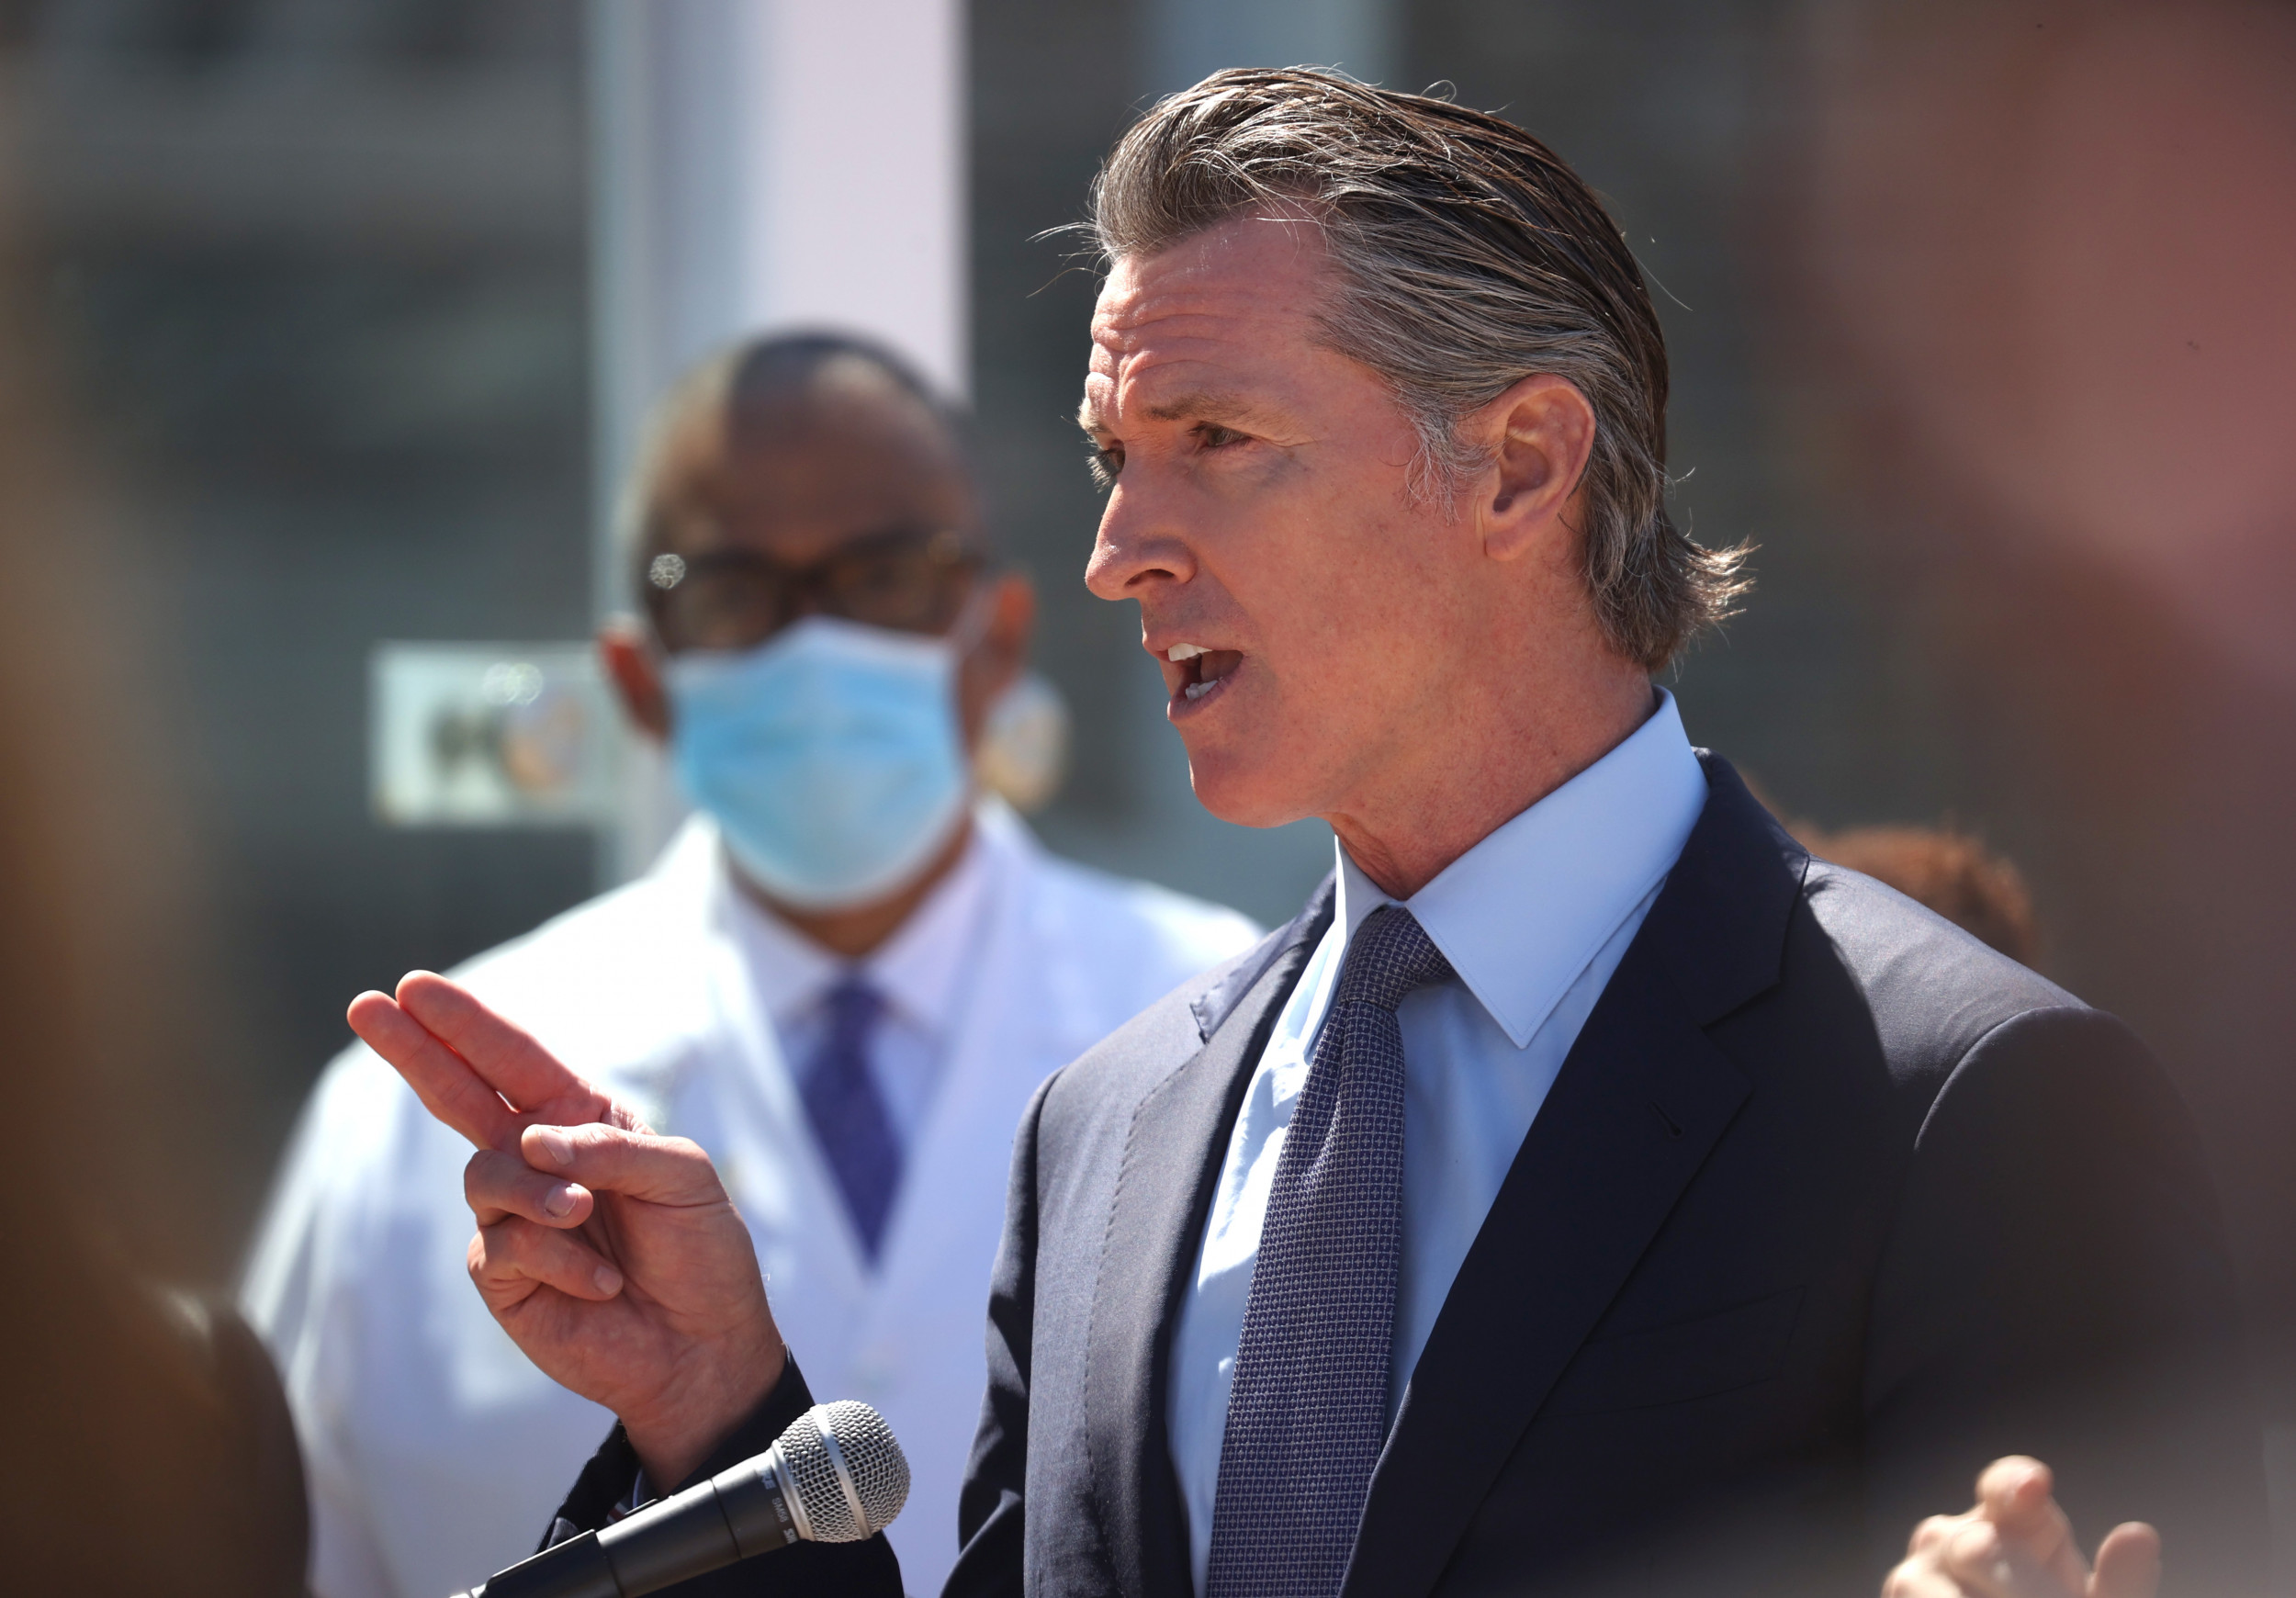 Gavin Newsom Bypassed Local Health Experts. Now, Delta Variant of COVID-19 Is Moving Fast